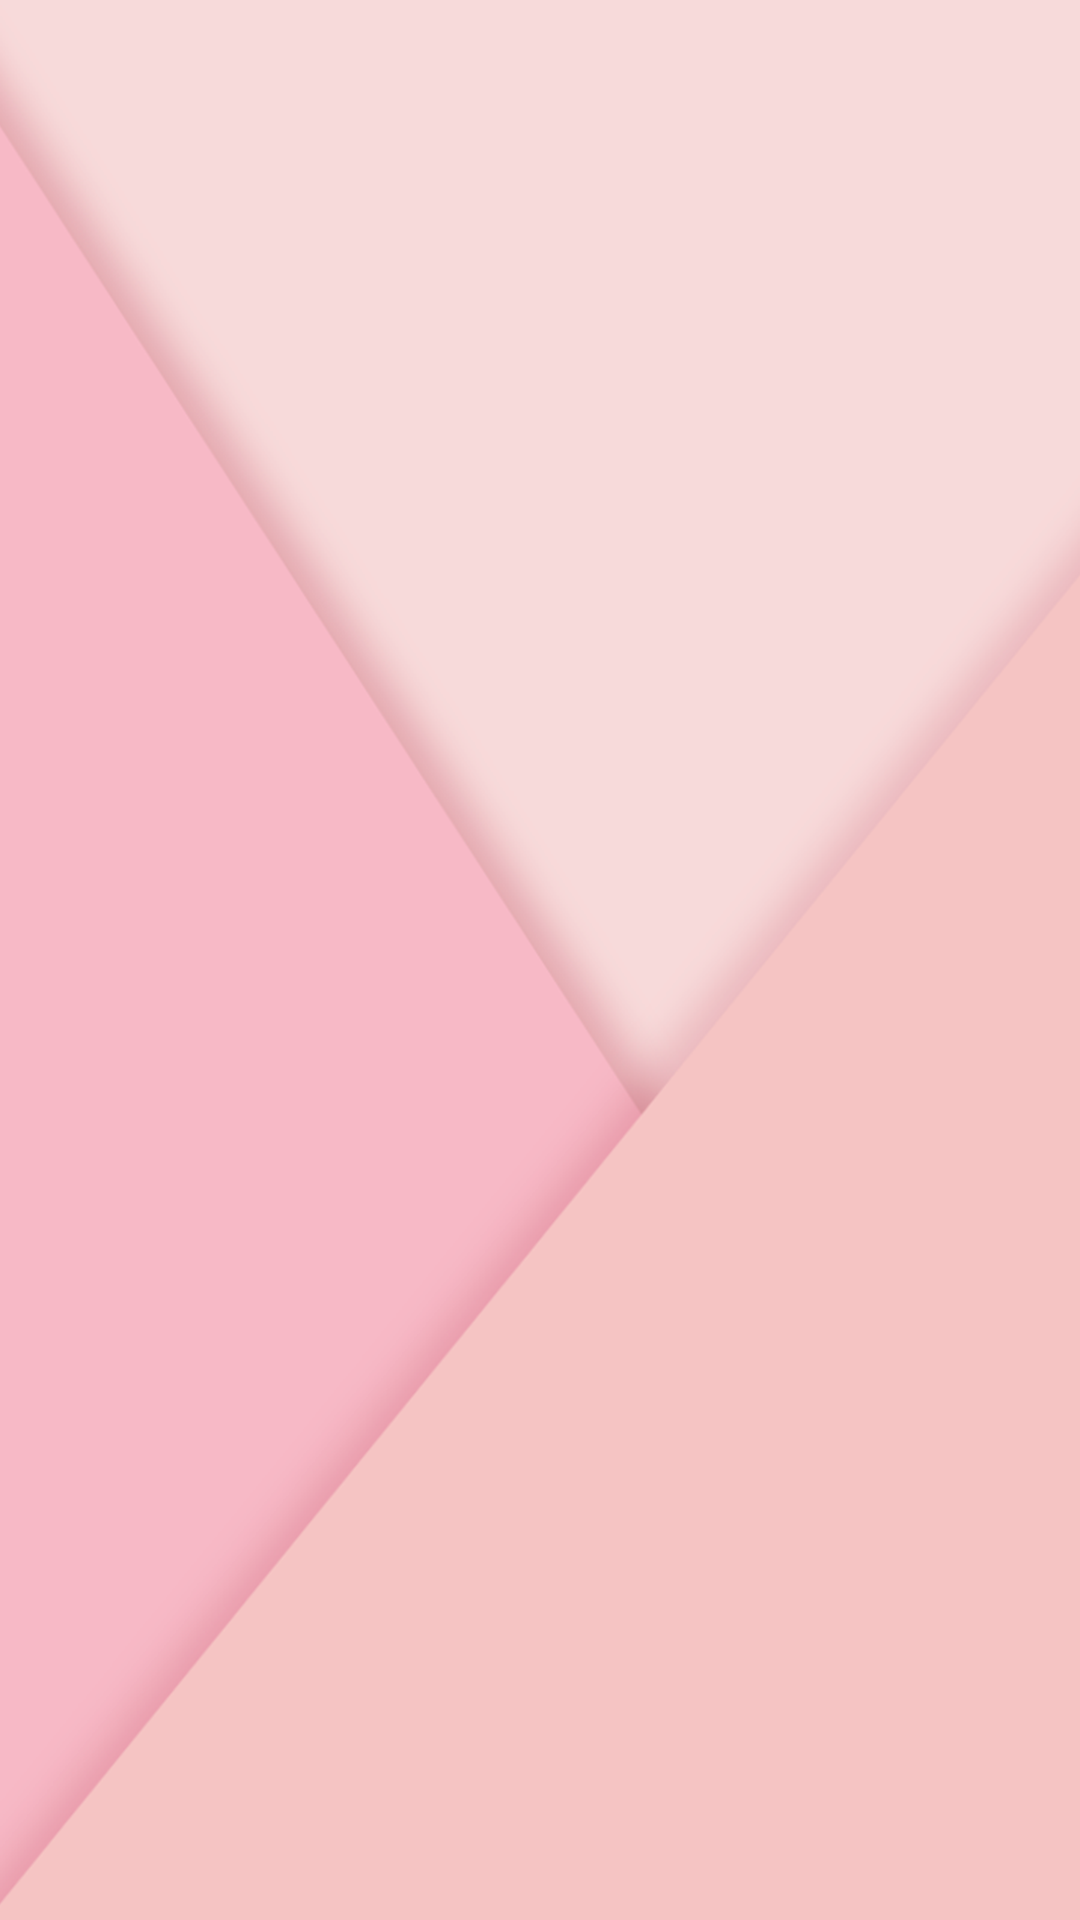 Wallpaper Tricolor Pink by Gocase, pink, rosa, pink world, tricolor, cute, girly, wallpaper, fundo de tela, background, gocase, lovegocase, #gocase, #lovegocase, #wallpaper, #fundodetela, #background, #pink, #tricolor, #rosa